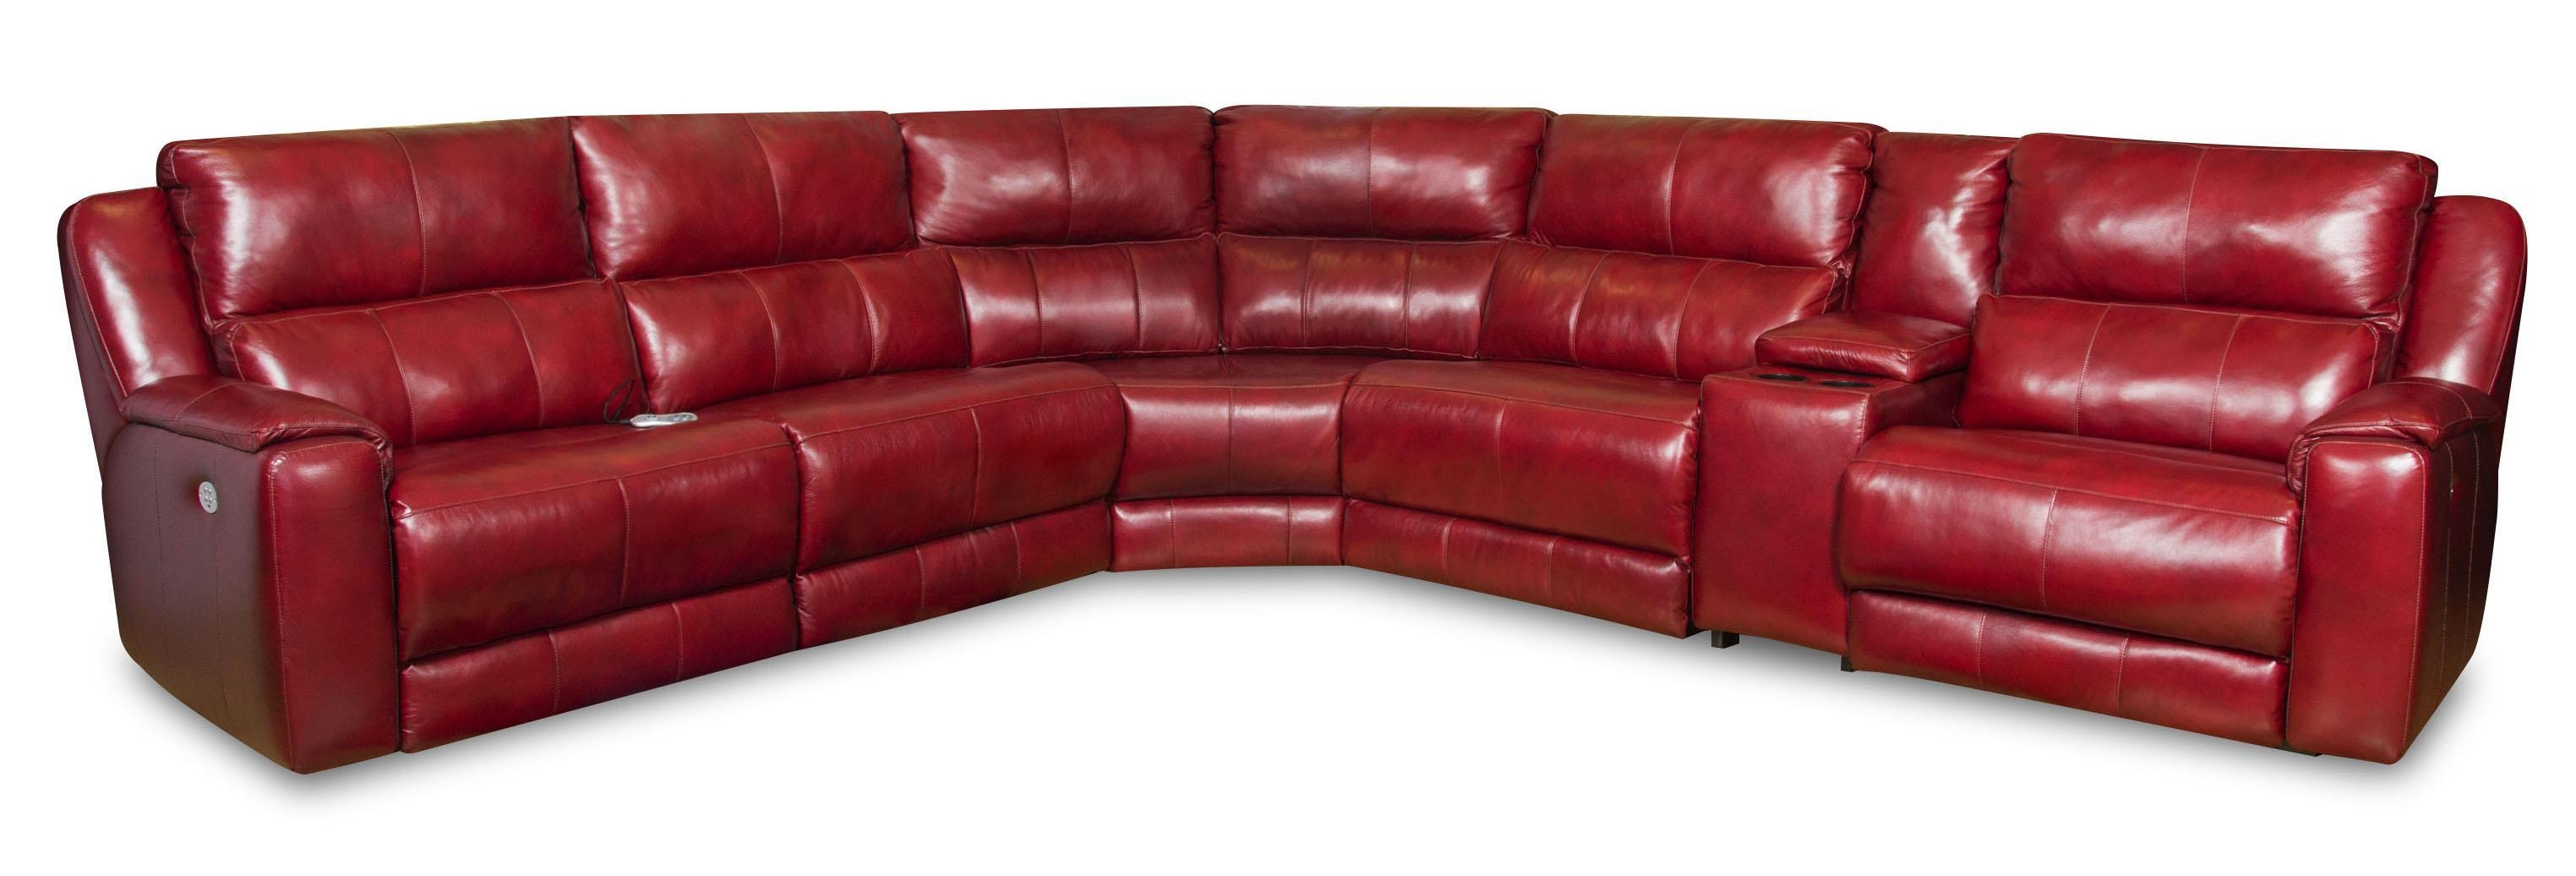 Sectional Sofa With 5 Seats And Cup Holders And Power Headrests within Sofas With Cup Holders